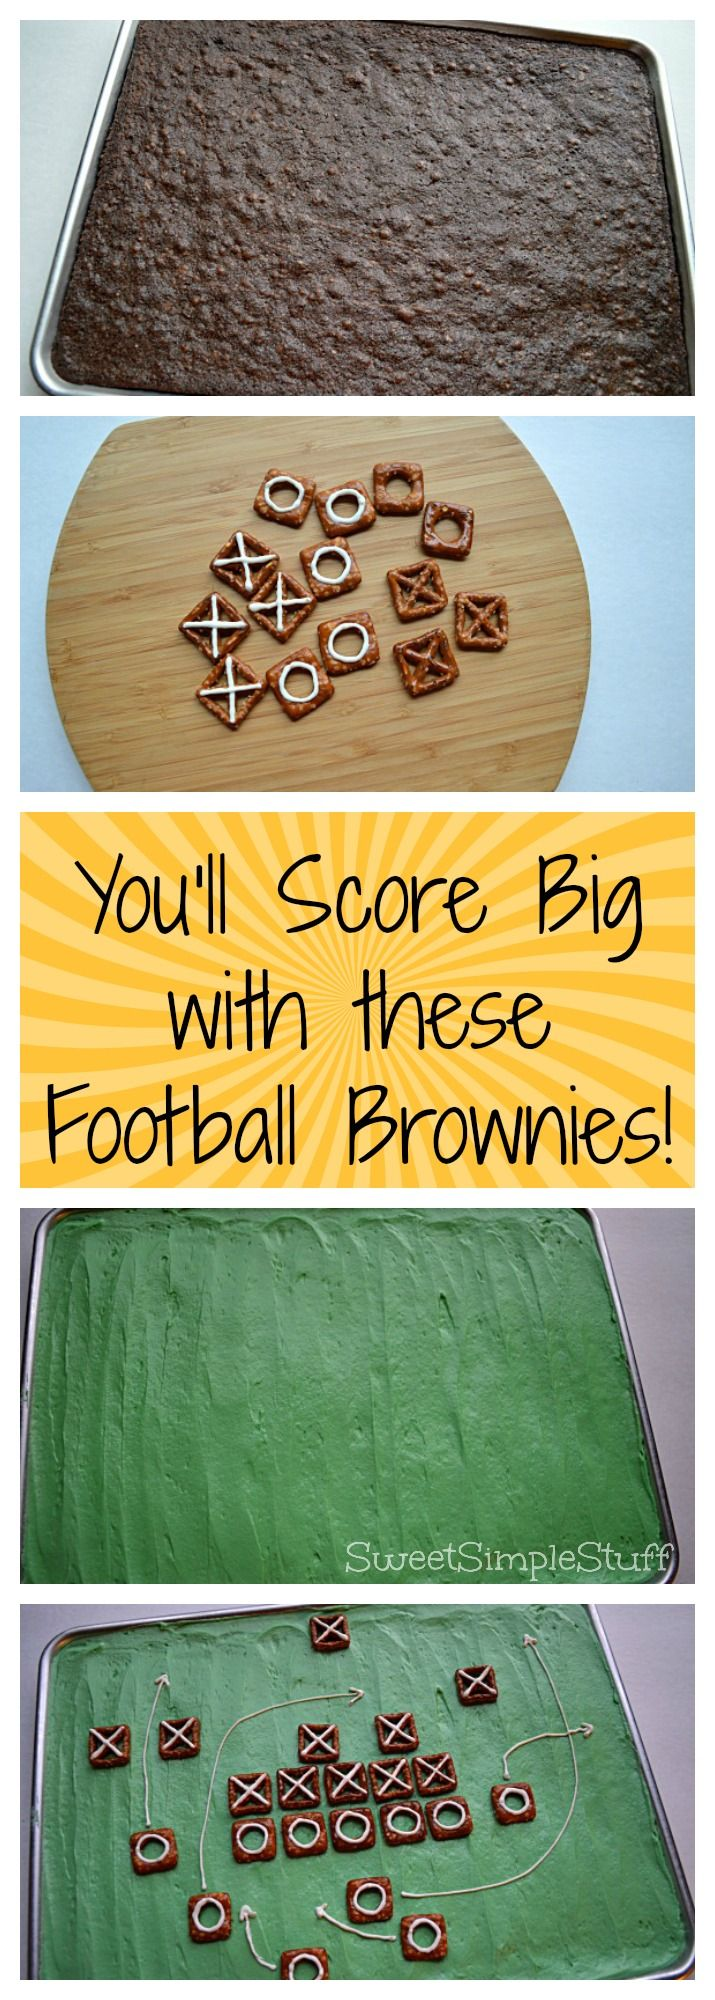 Score Big Football Brownies - SweetSimpleStuff